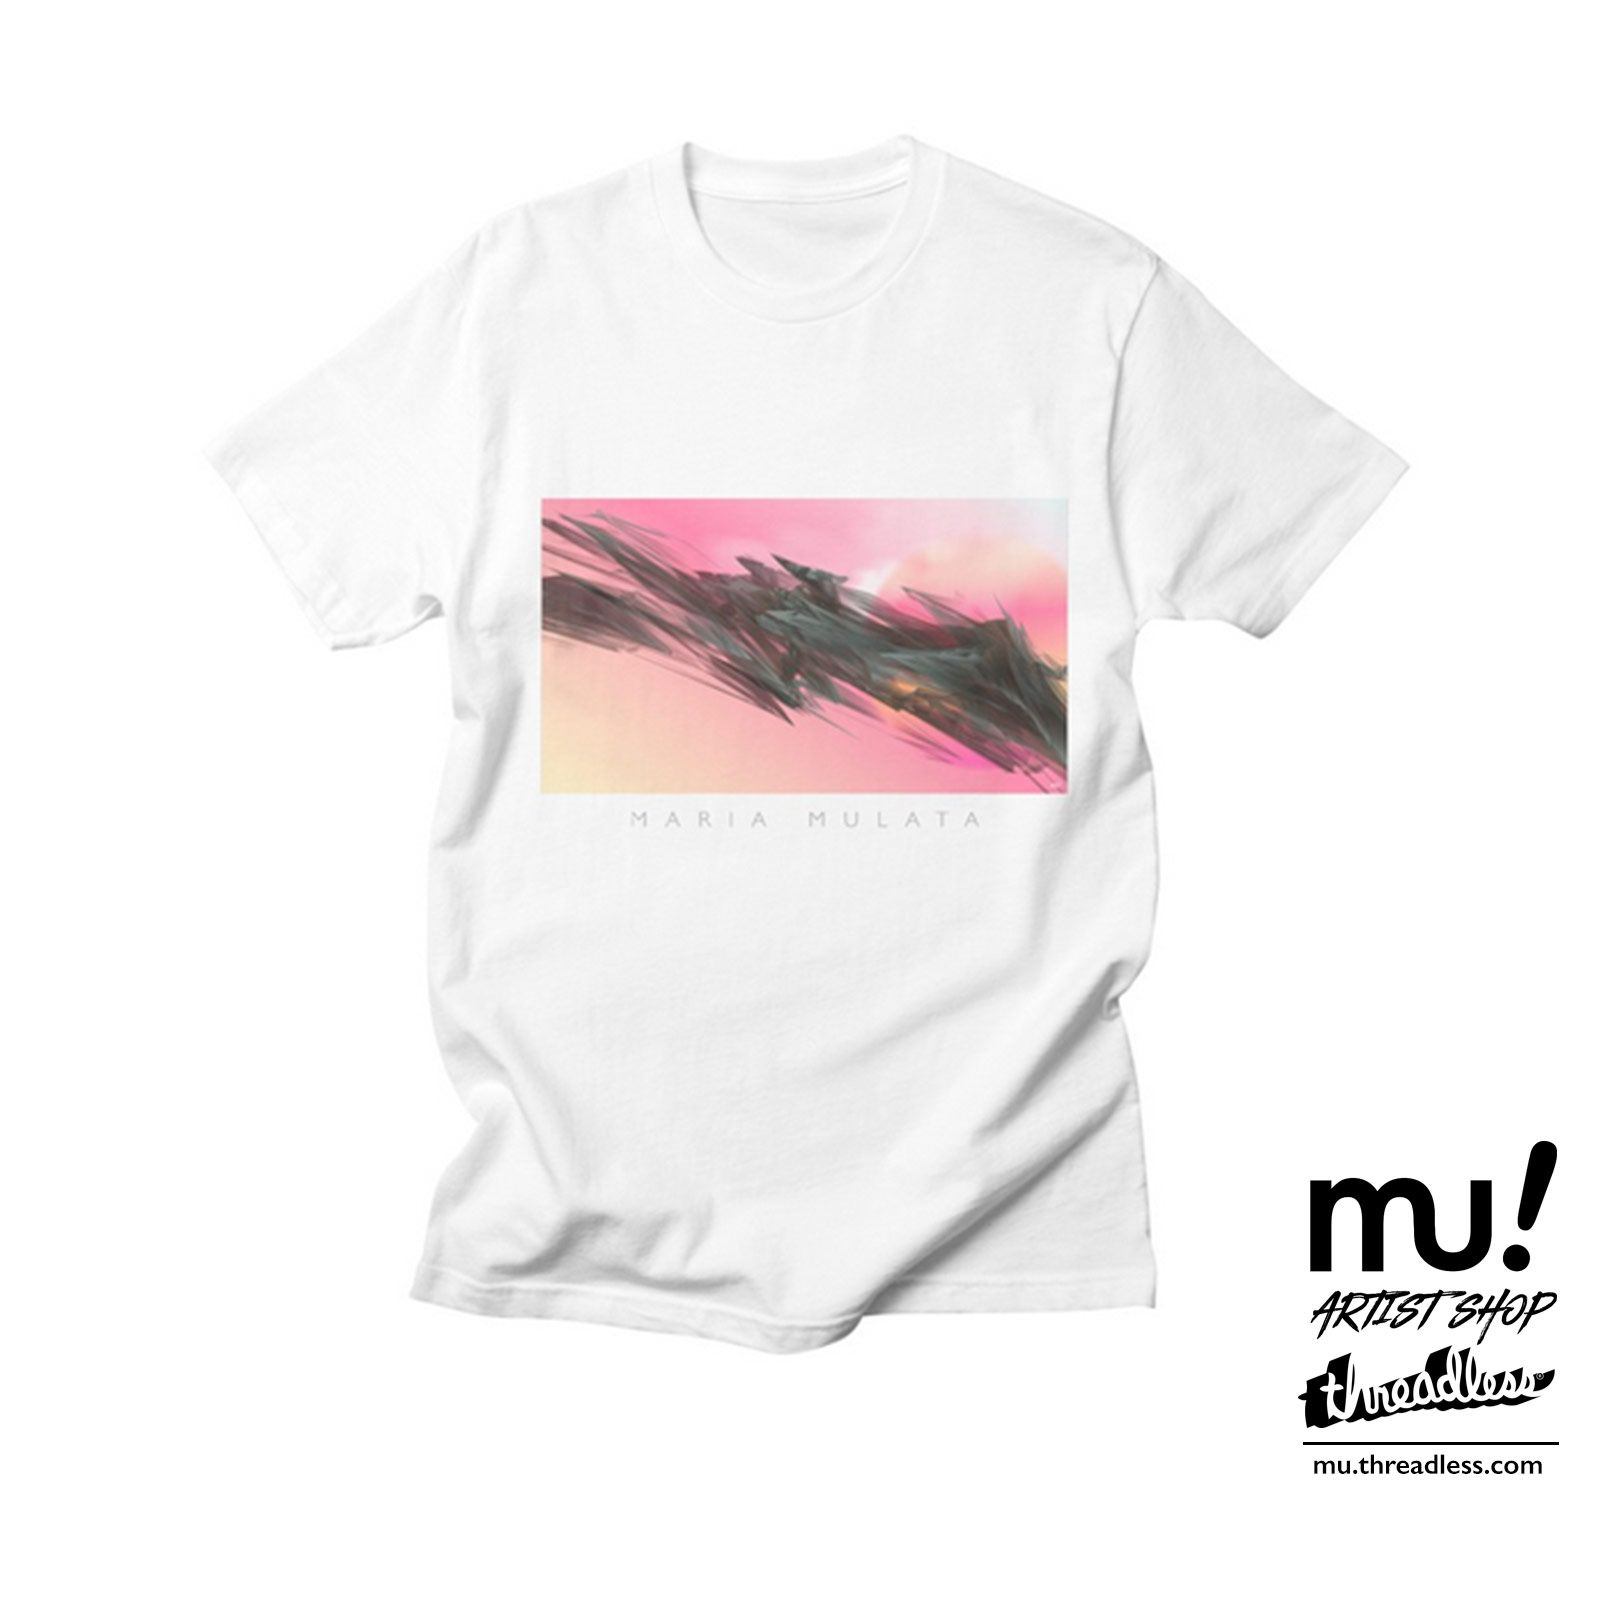 maria-mulata-mu_studio_sebastian_murra_shirt-logo_threadless_web